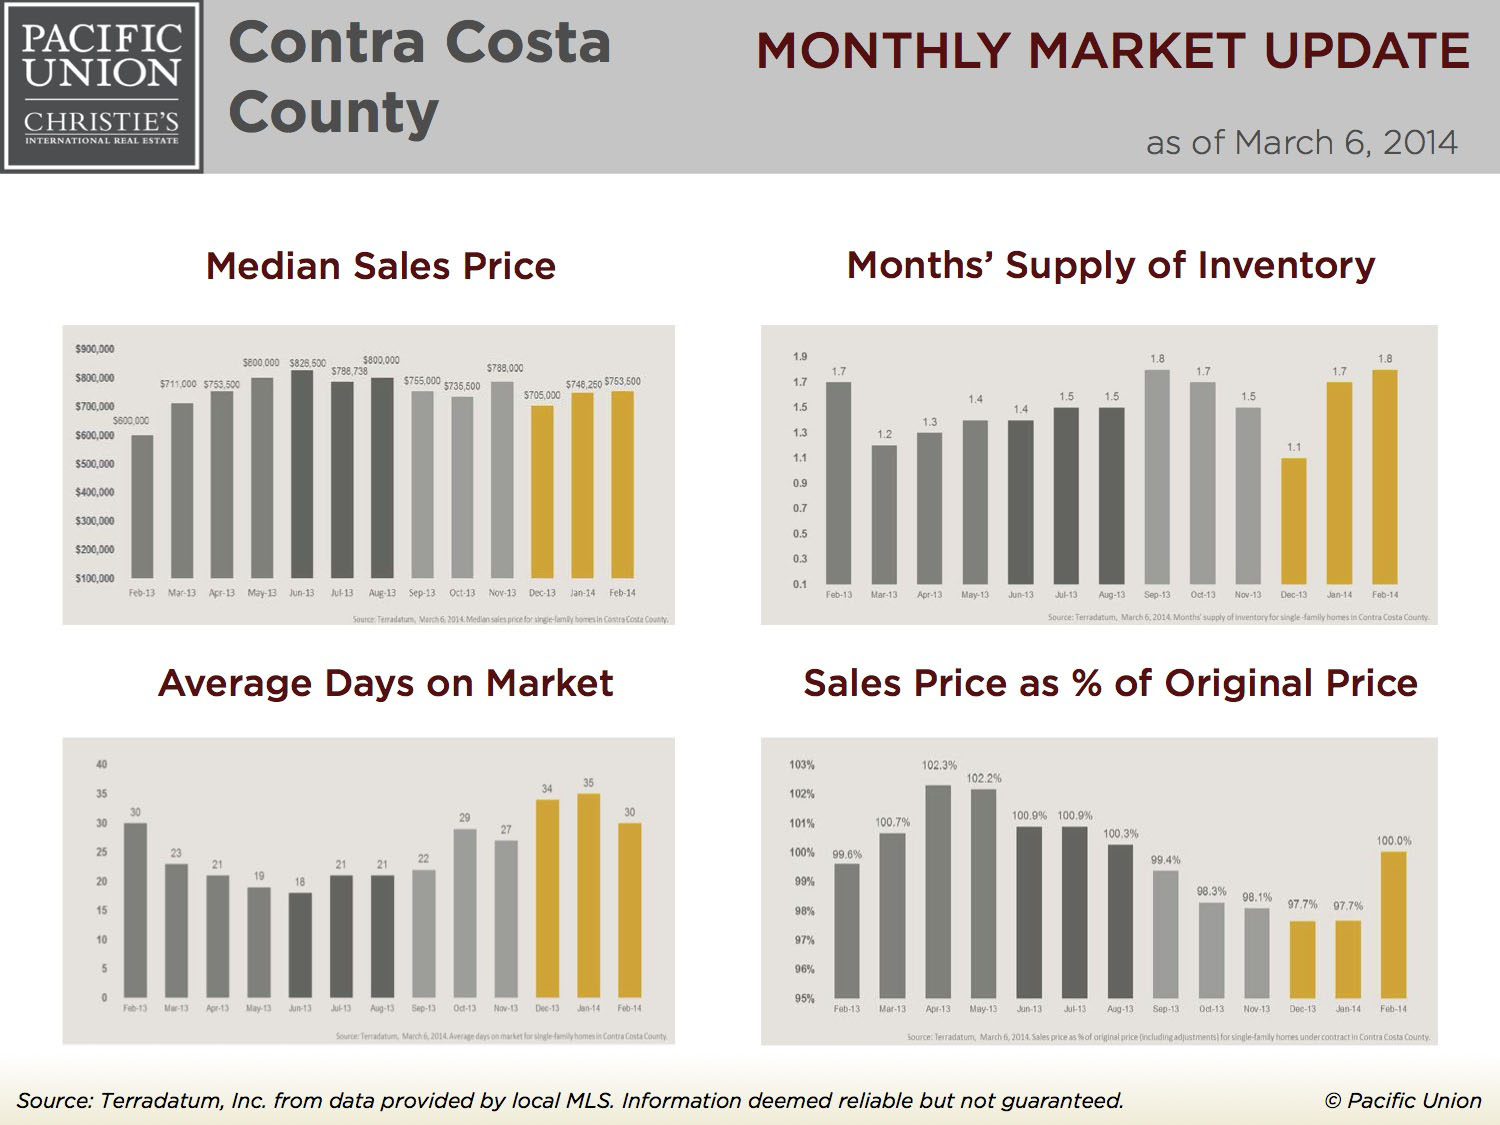 February 2014 Bay Area Real Estate Update – a Peek at Lamorinda's March Outlook